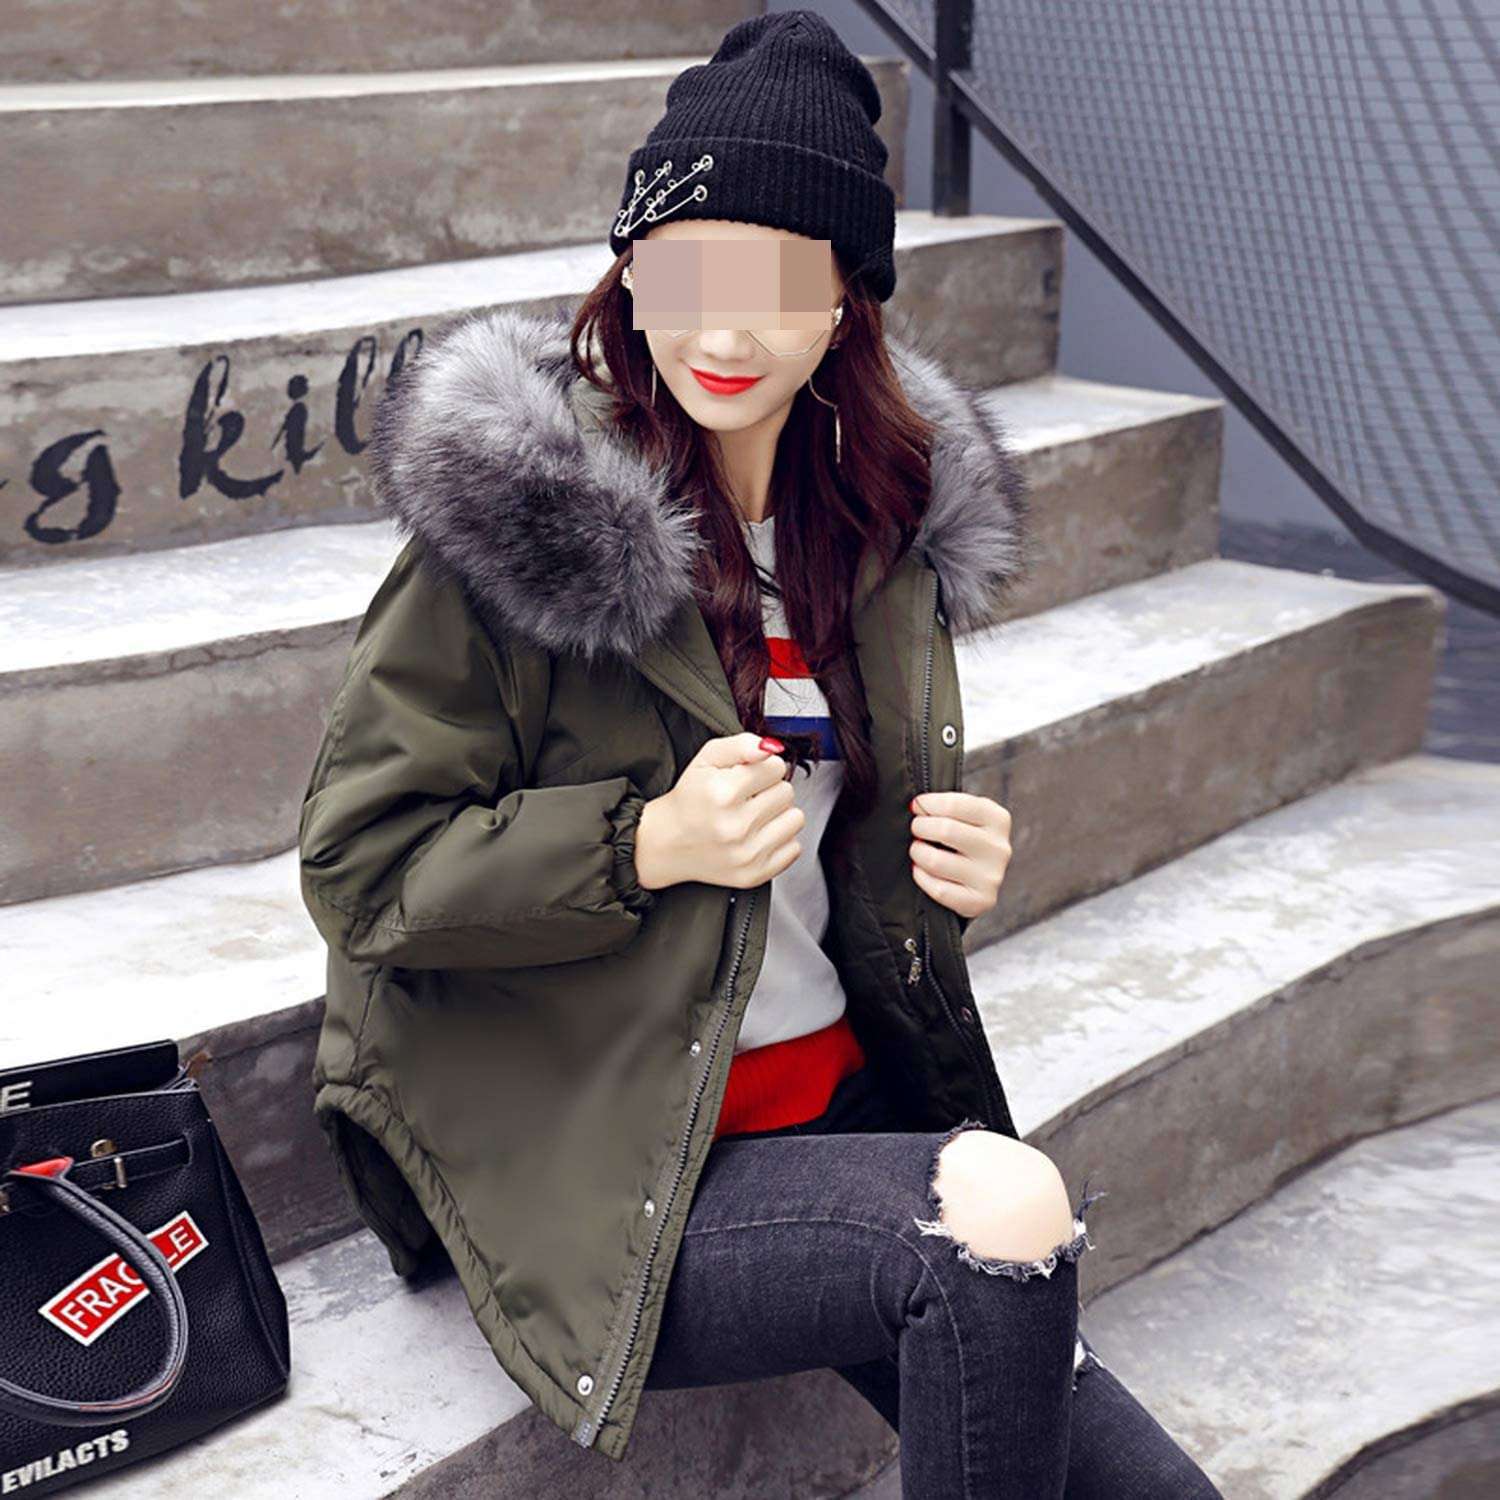 Women Winter Jacket Coat Big F-ur Collar Hood Cotton Warm Short Zipper Jackets Outwear